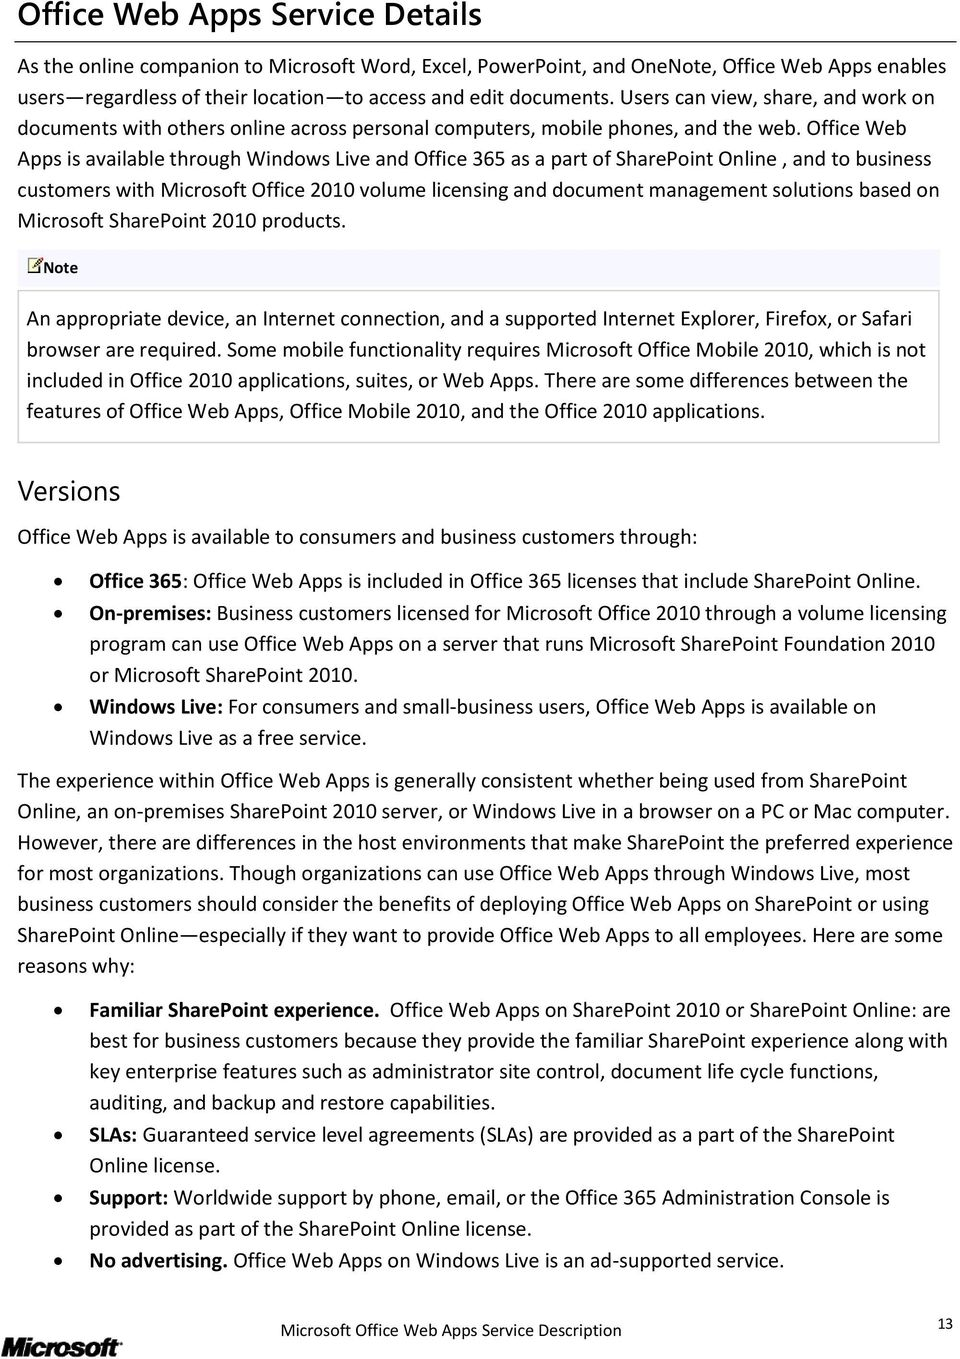 Office Web Apps is available through Windows Live and Office 365 as a part of SharePoint Online, and to business customers with Microsoft Office 2010 volume licensing and document management